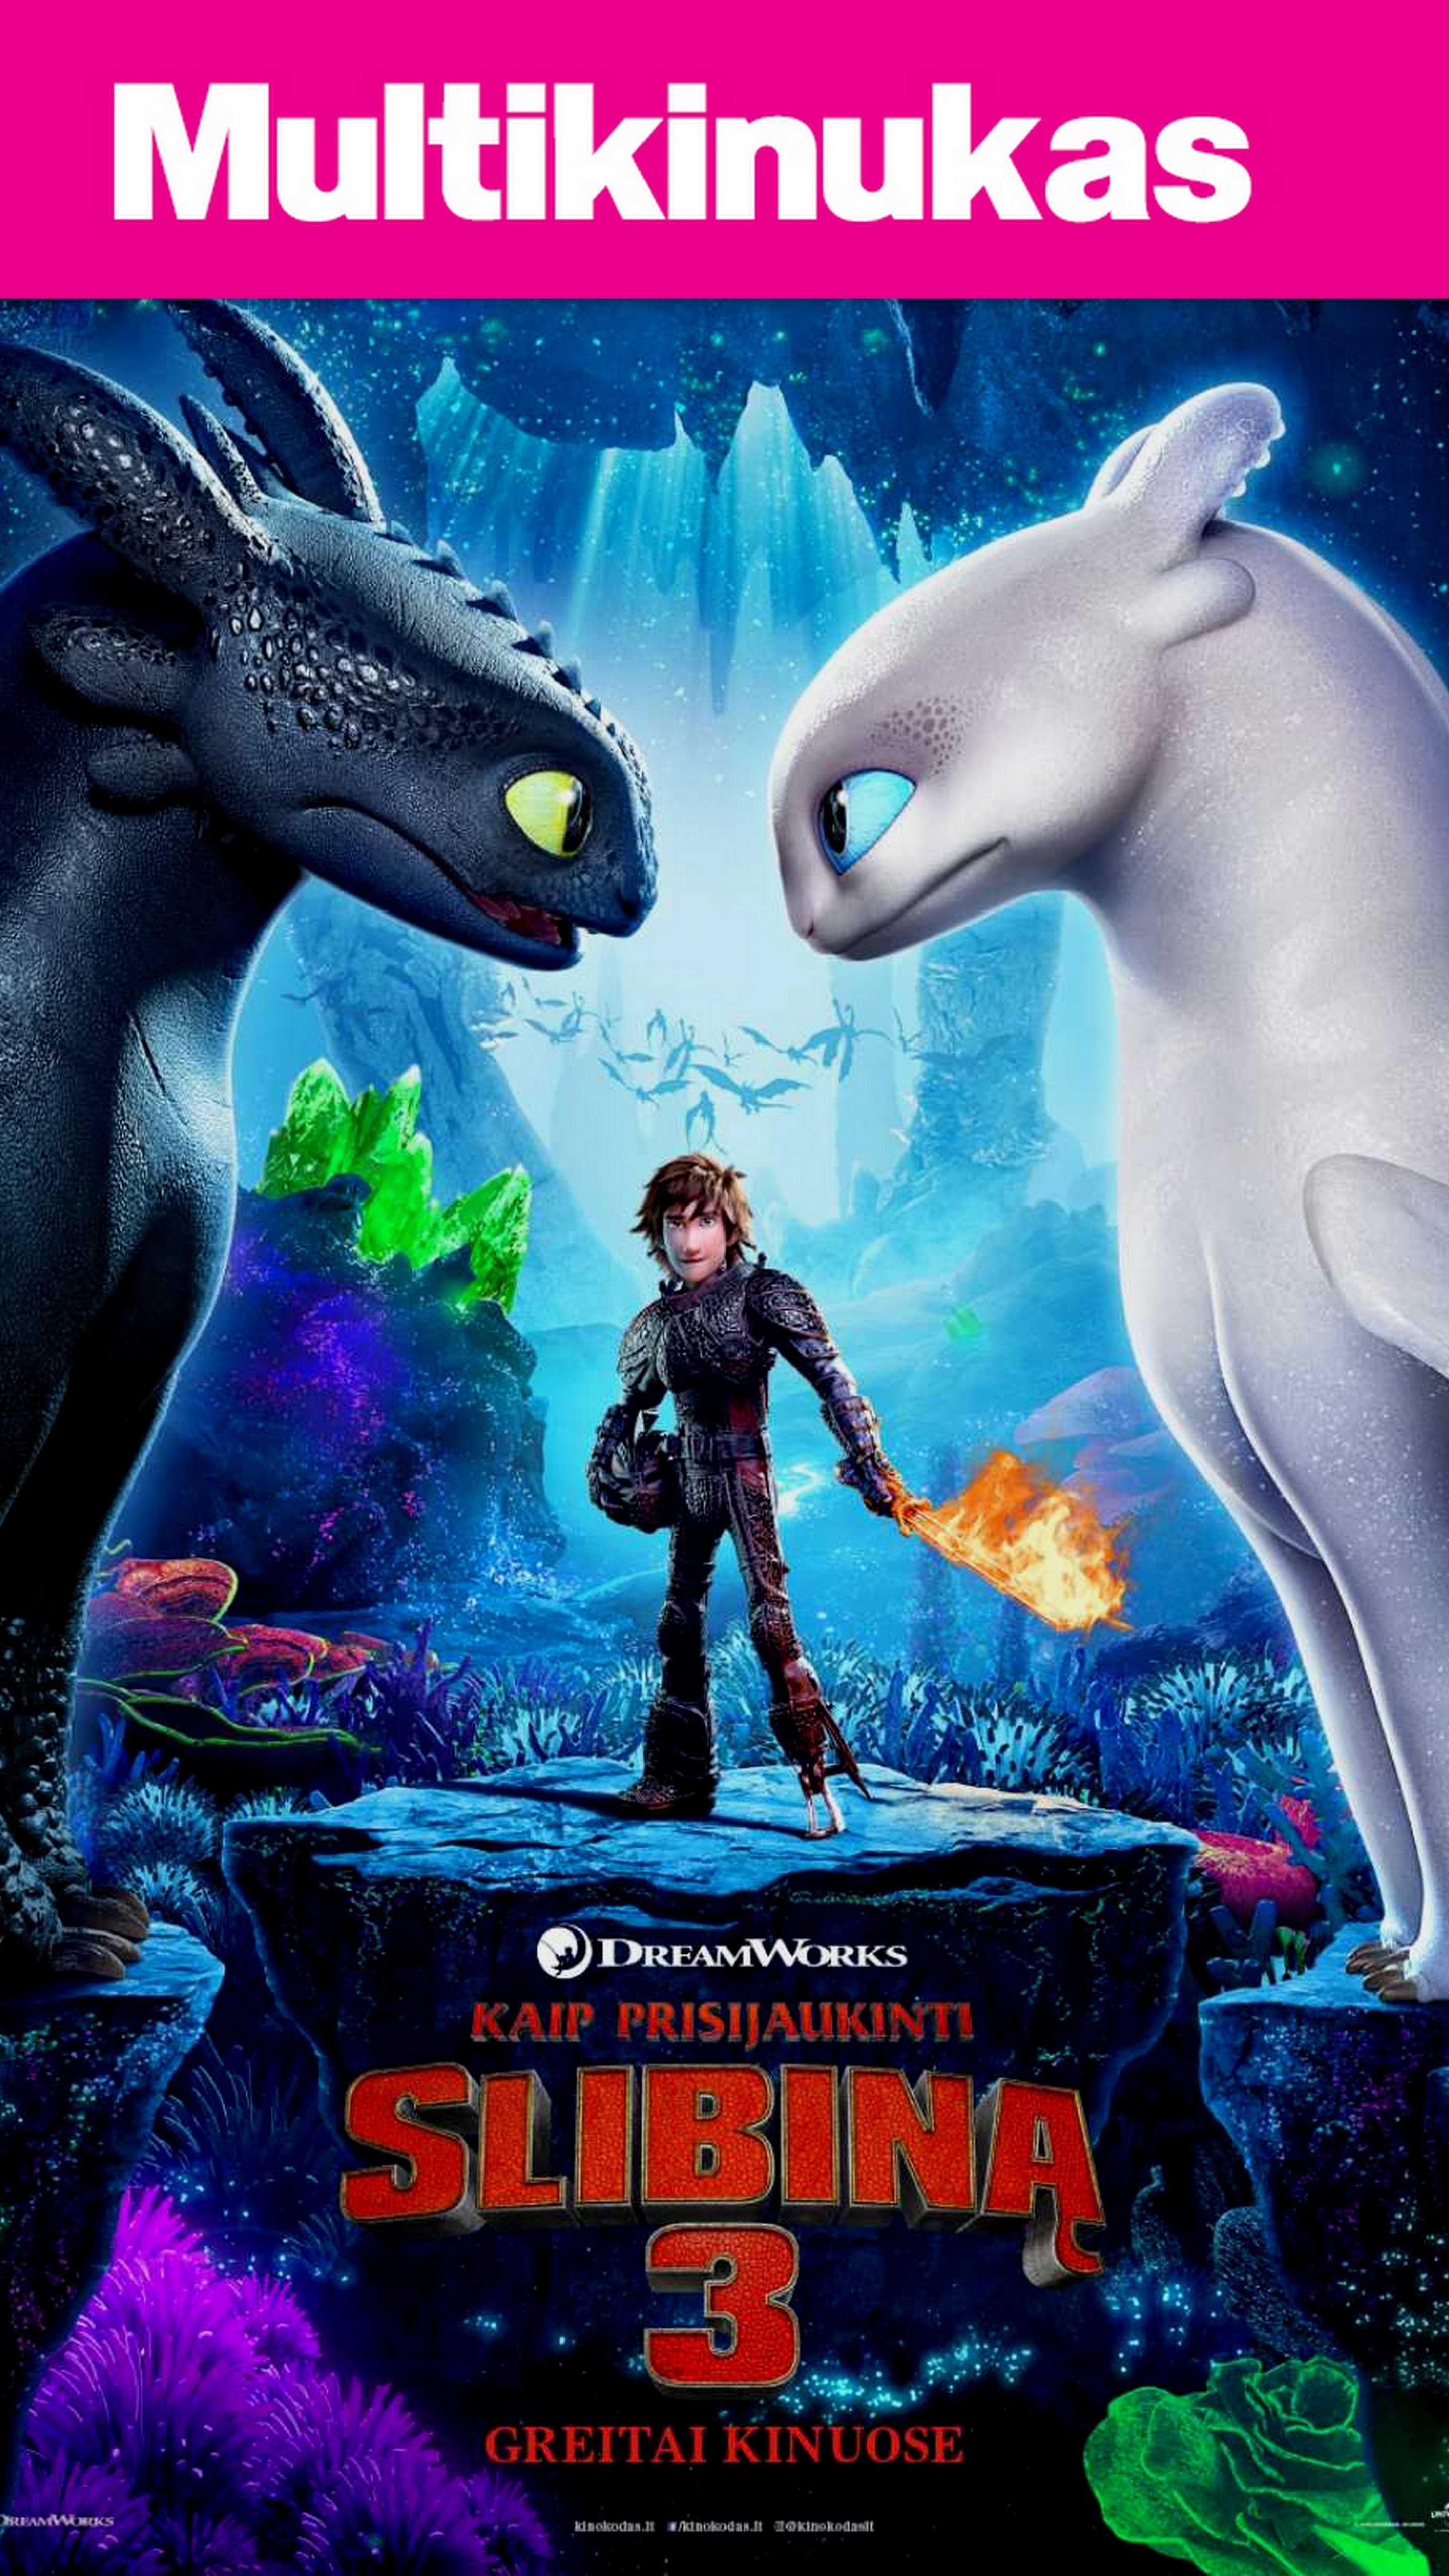 Multikinukas: Kaip prisijaukinti slibiną 3 (How to Train Your Dragon: The Hidden World)